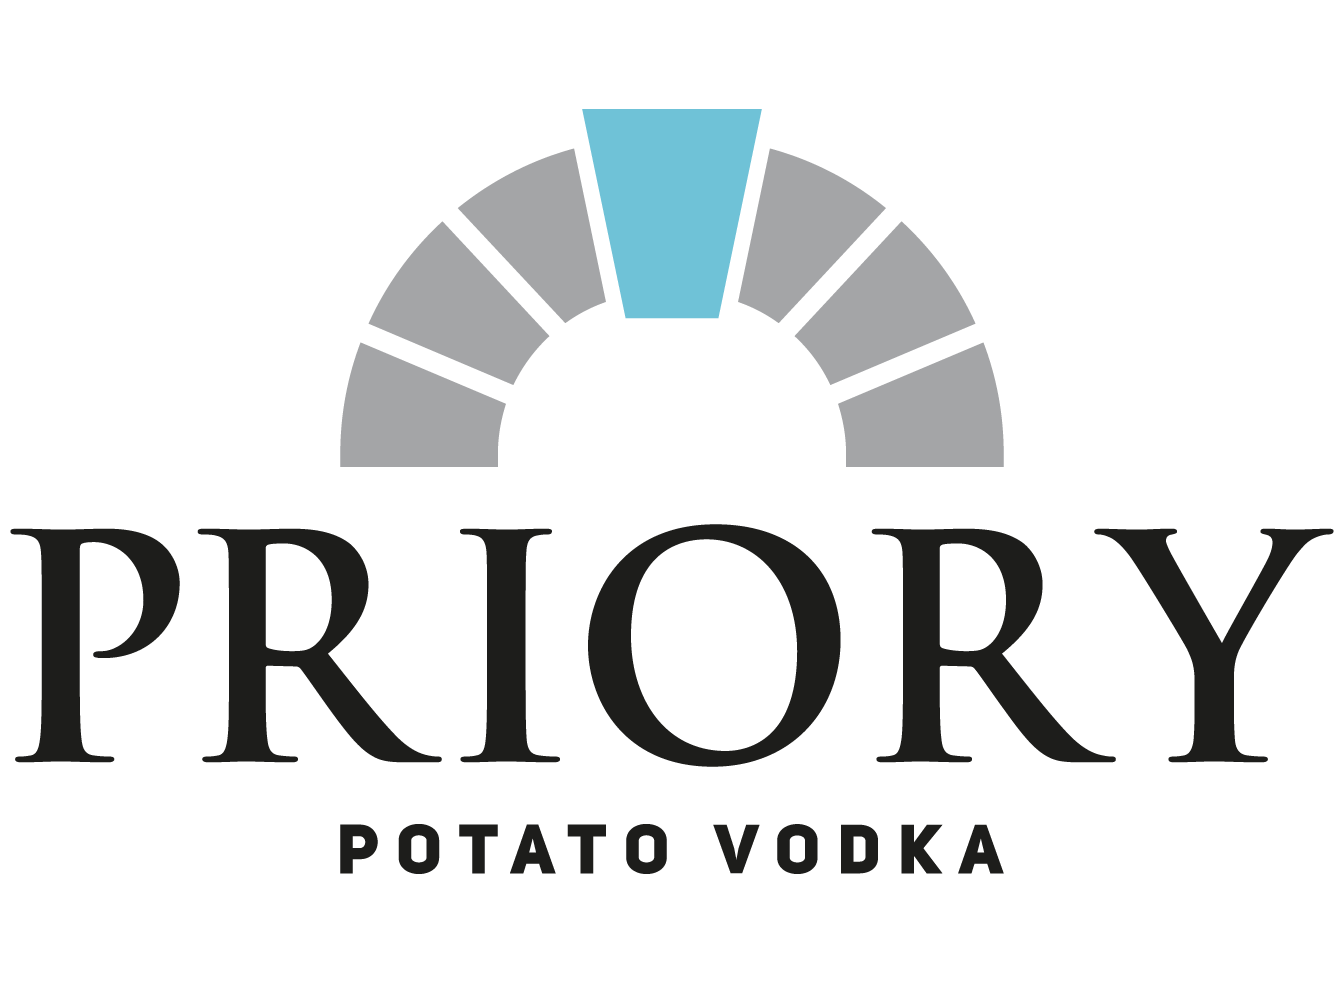 Priory Vodka